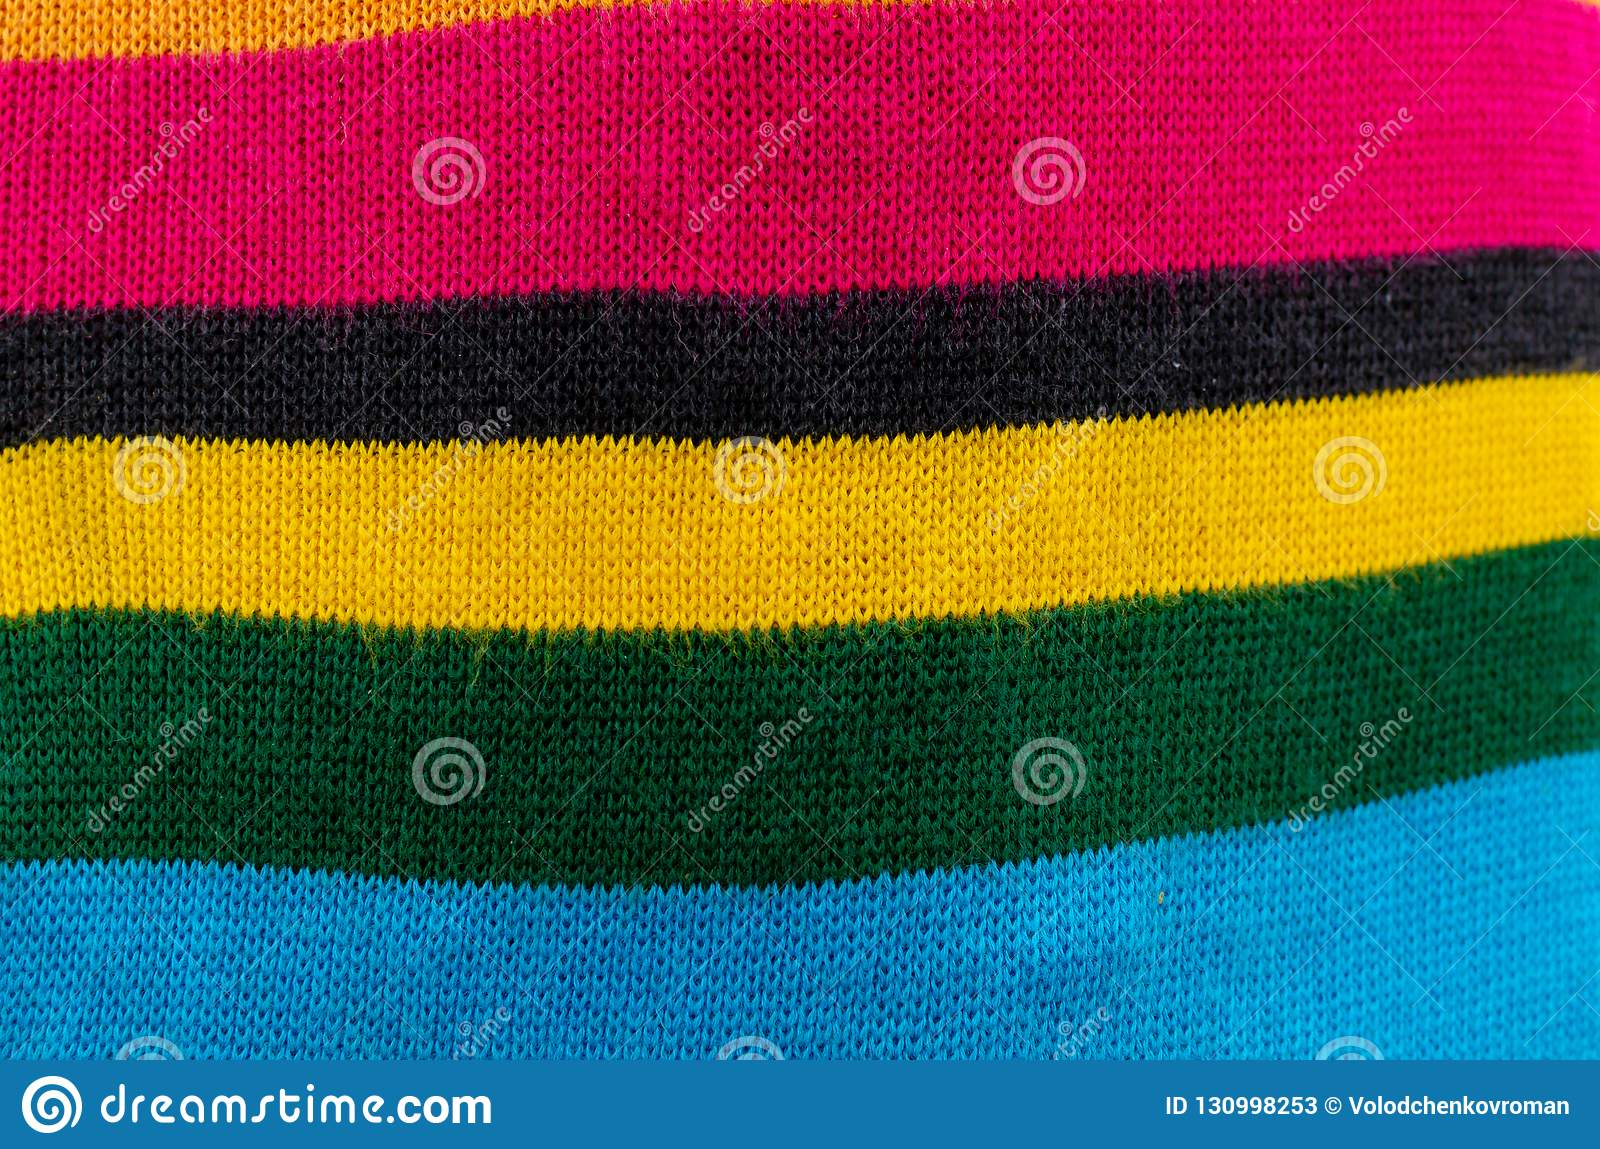 ed048c199b7 Wool Fabric Knitted Of Multi-colored Threads Stock Image - Image of ...